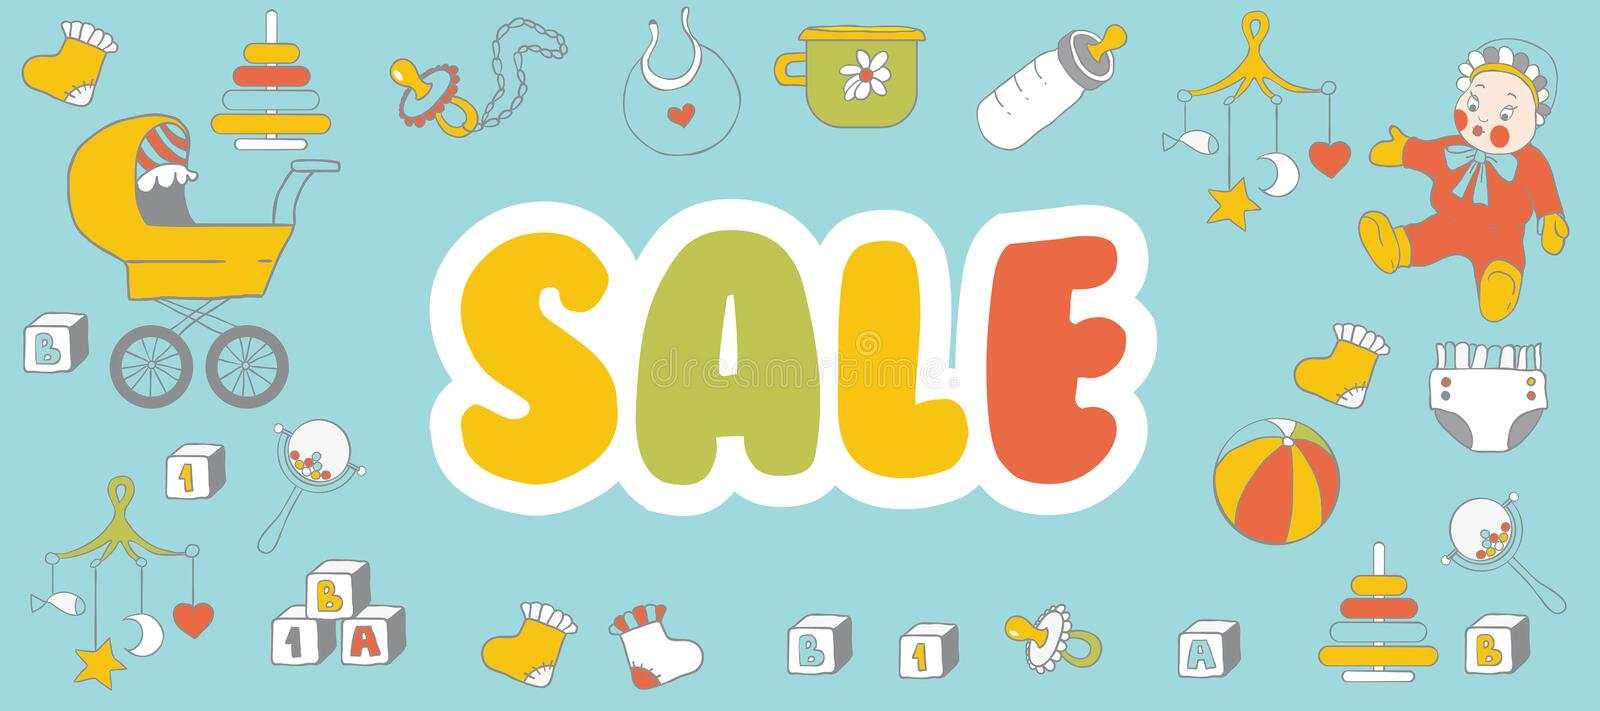 Selling children`s products. Sale. Poster template for baby shop.  stock illustration